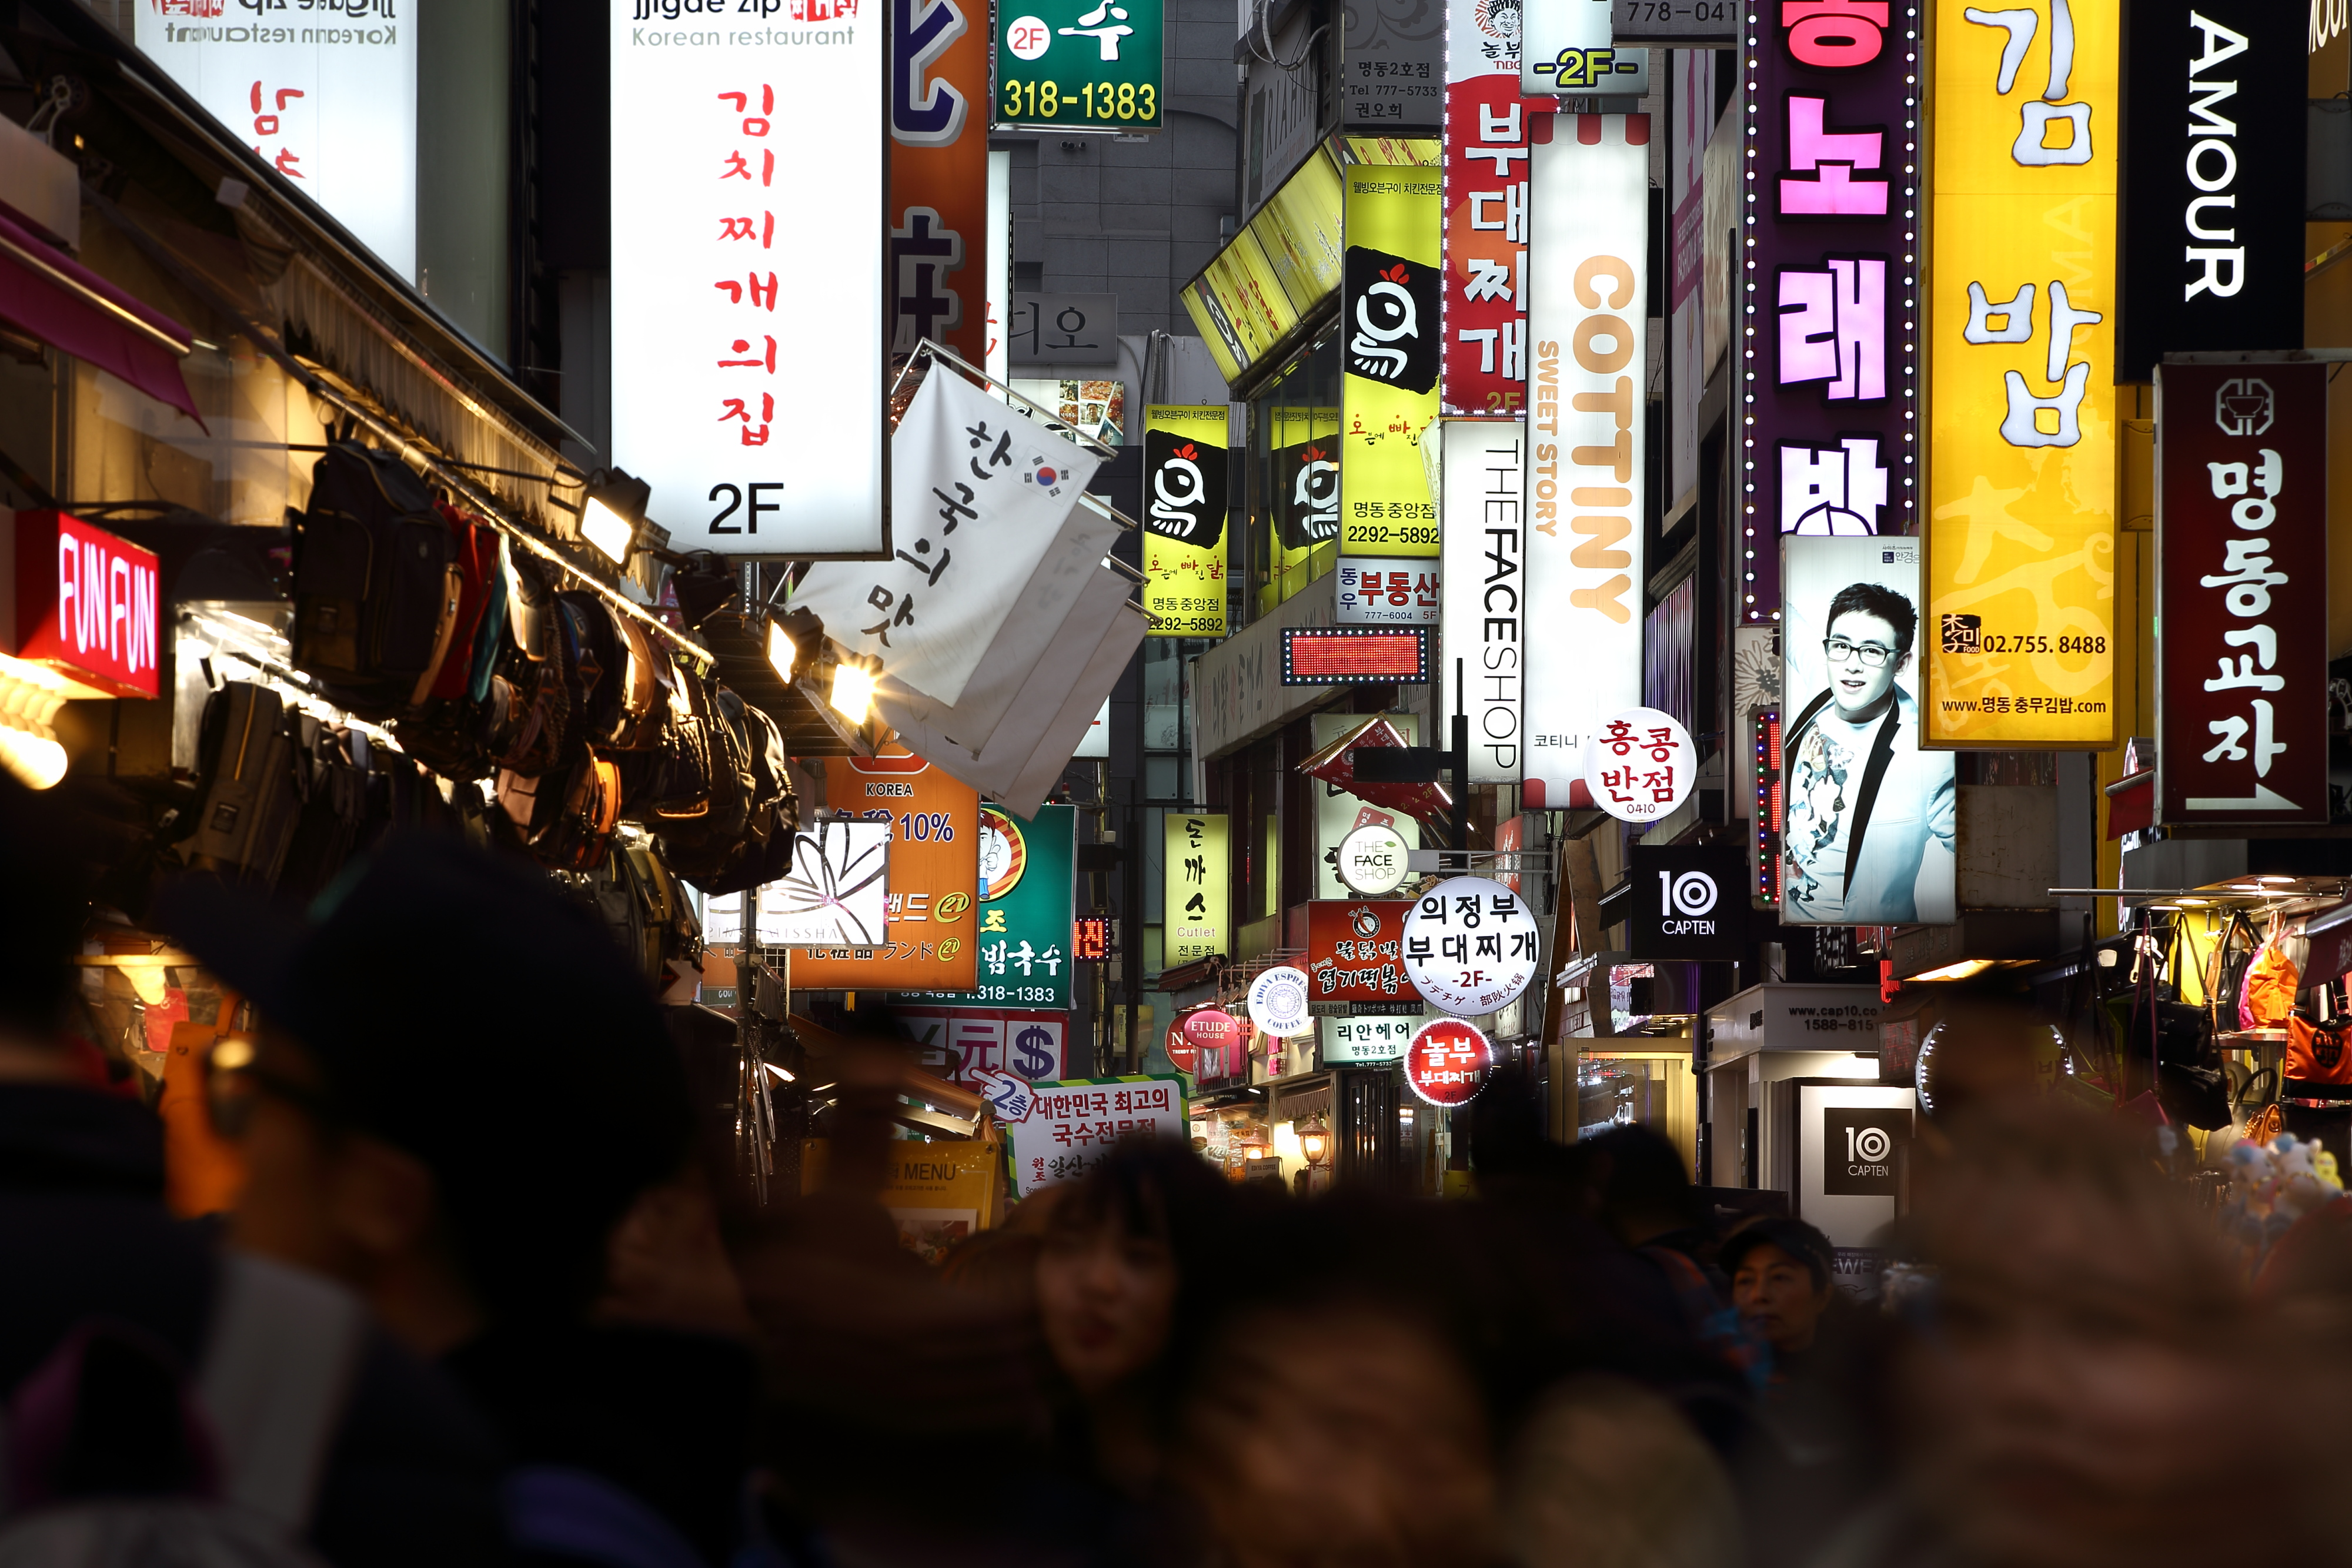 Illuminated signboards light up a street in the evening in the Myeongdong district of Seoul, South Korea, on Feb. 27, 2014.